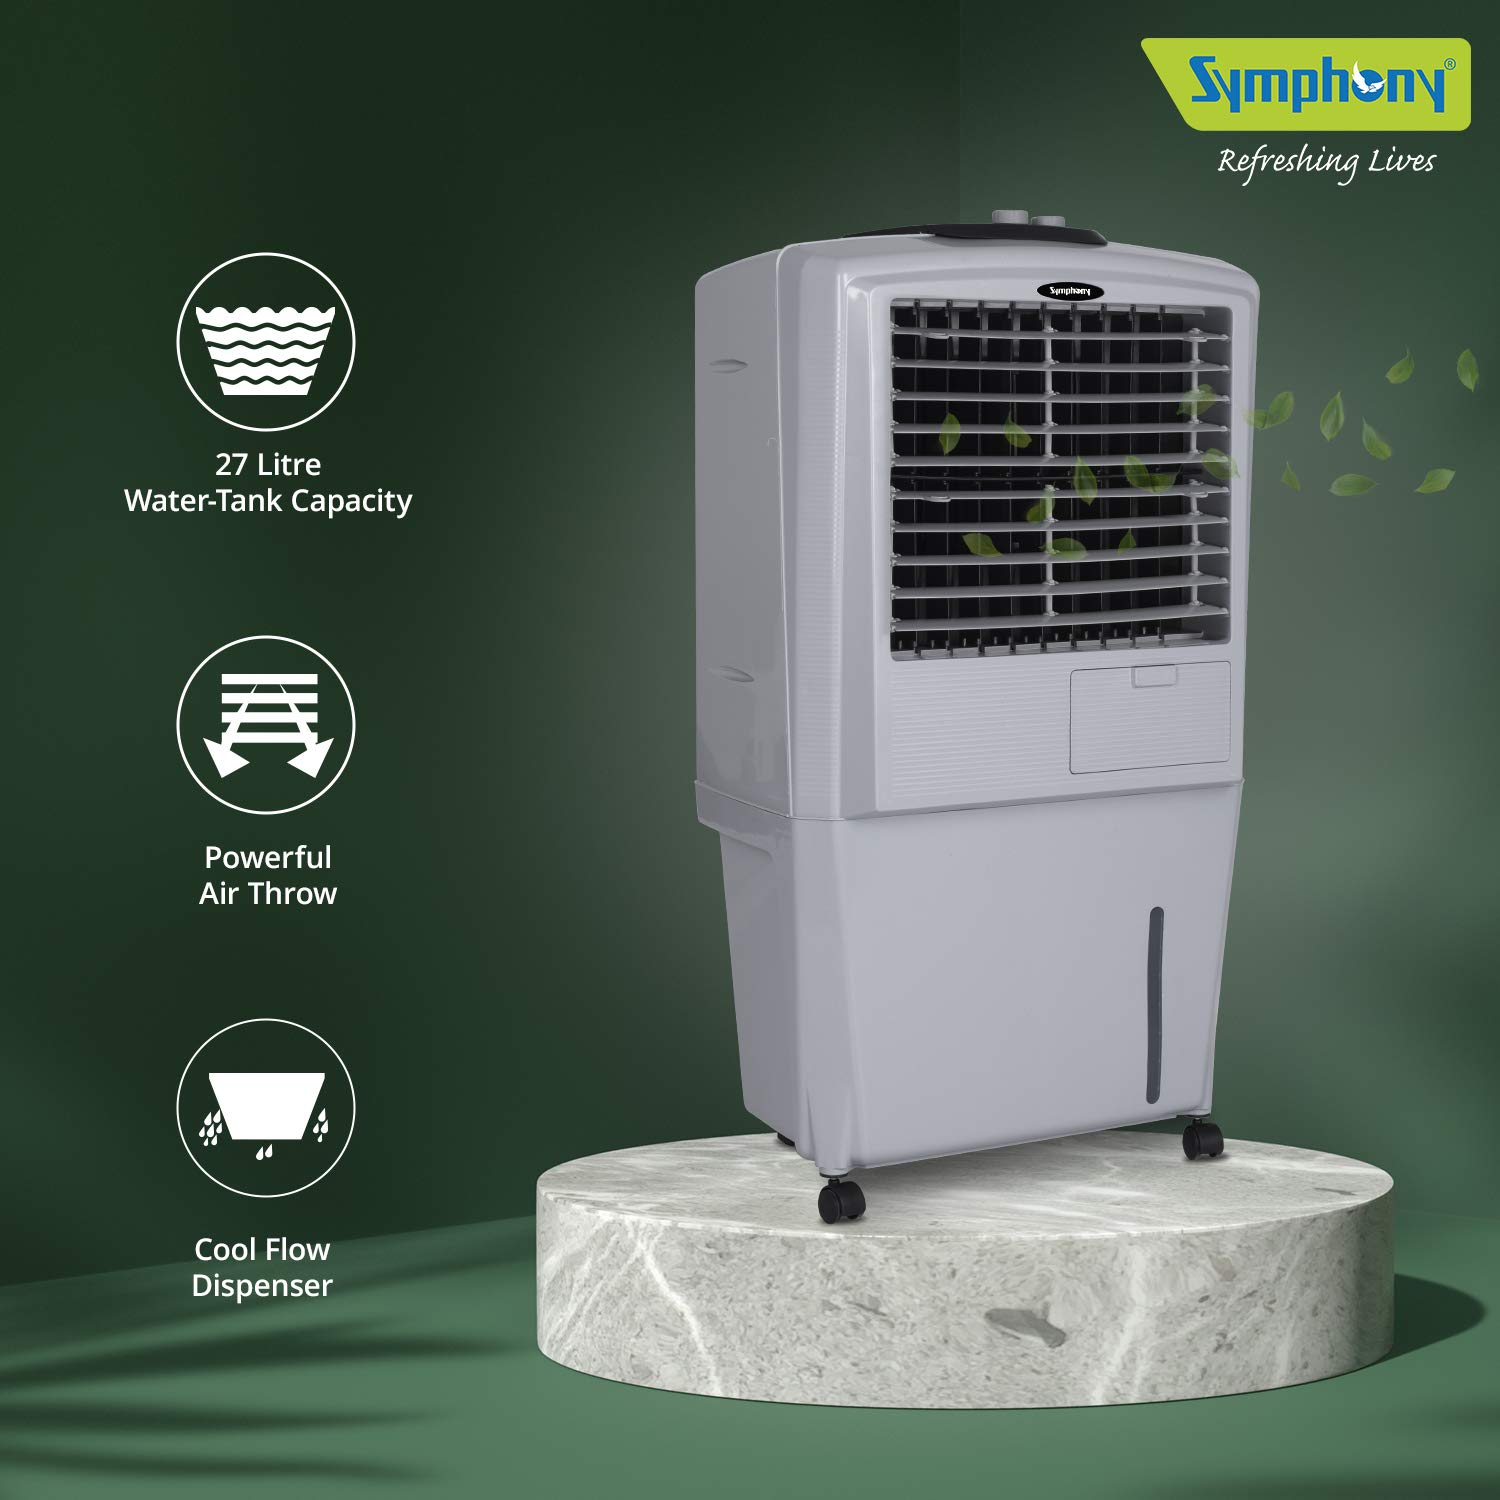 Symphony HiFlo 27 Personal Room Air Cooler 27-litres With Powerful Blower, Honeycomb Pads, Multistage Air Purification, Powerful Air Throw, Cool Flow